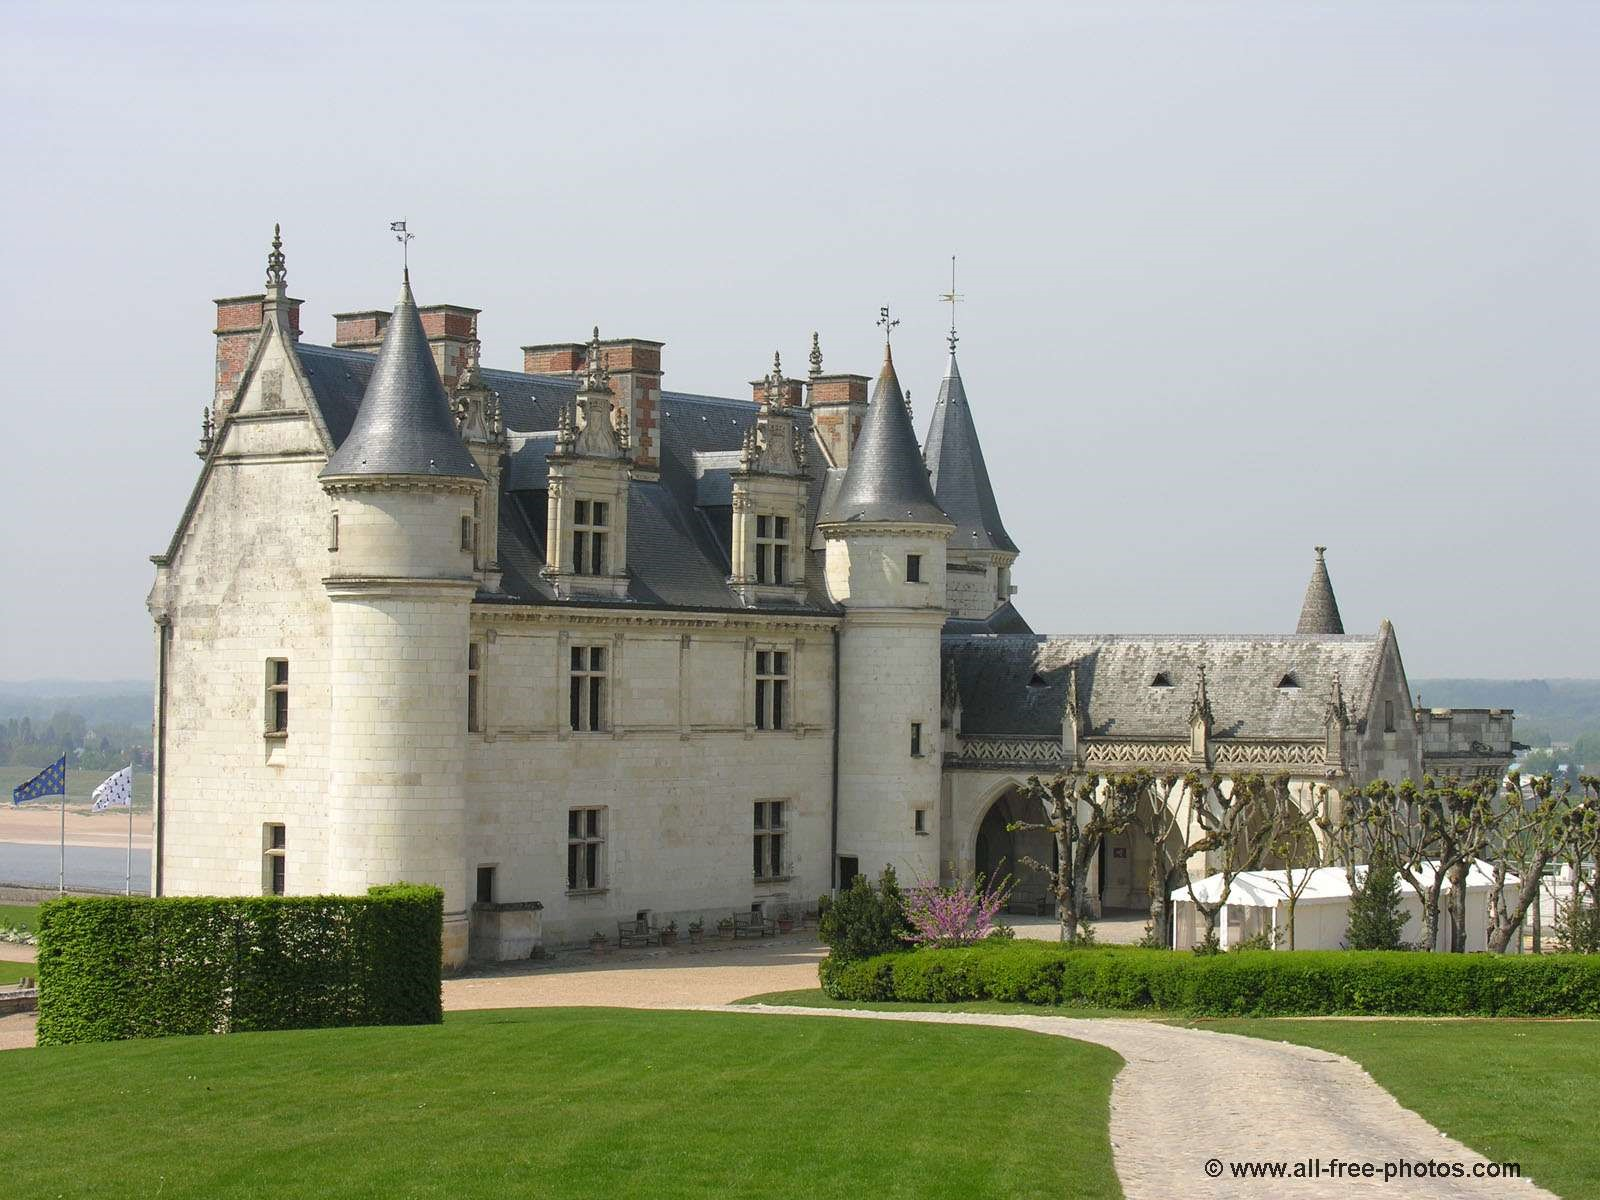 The-chateau-of-Amboise-where-James-may-first-have-met-Madeleine-of-France-–-the-influence-on-Falkland-Palace-is-obvious